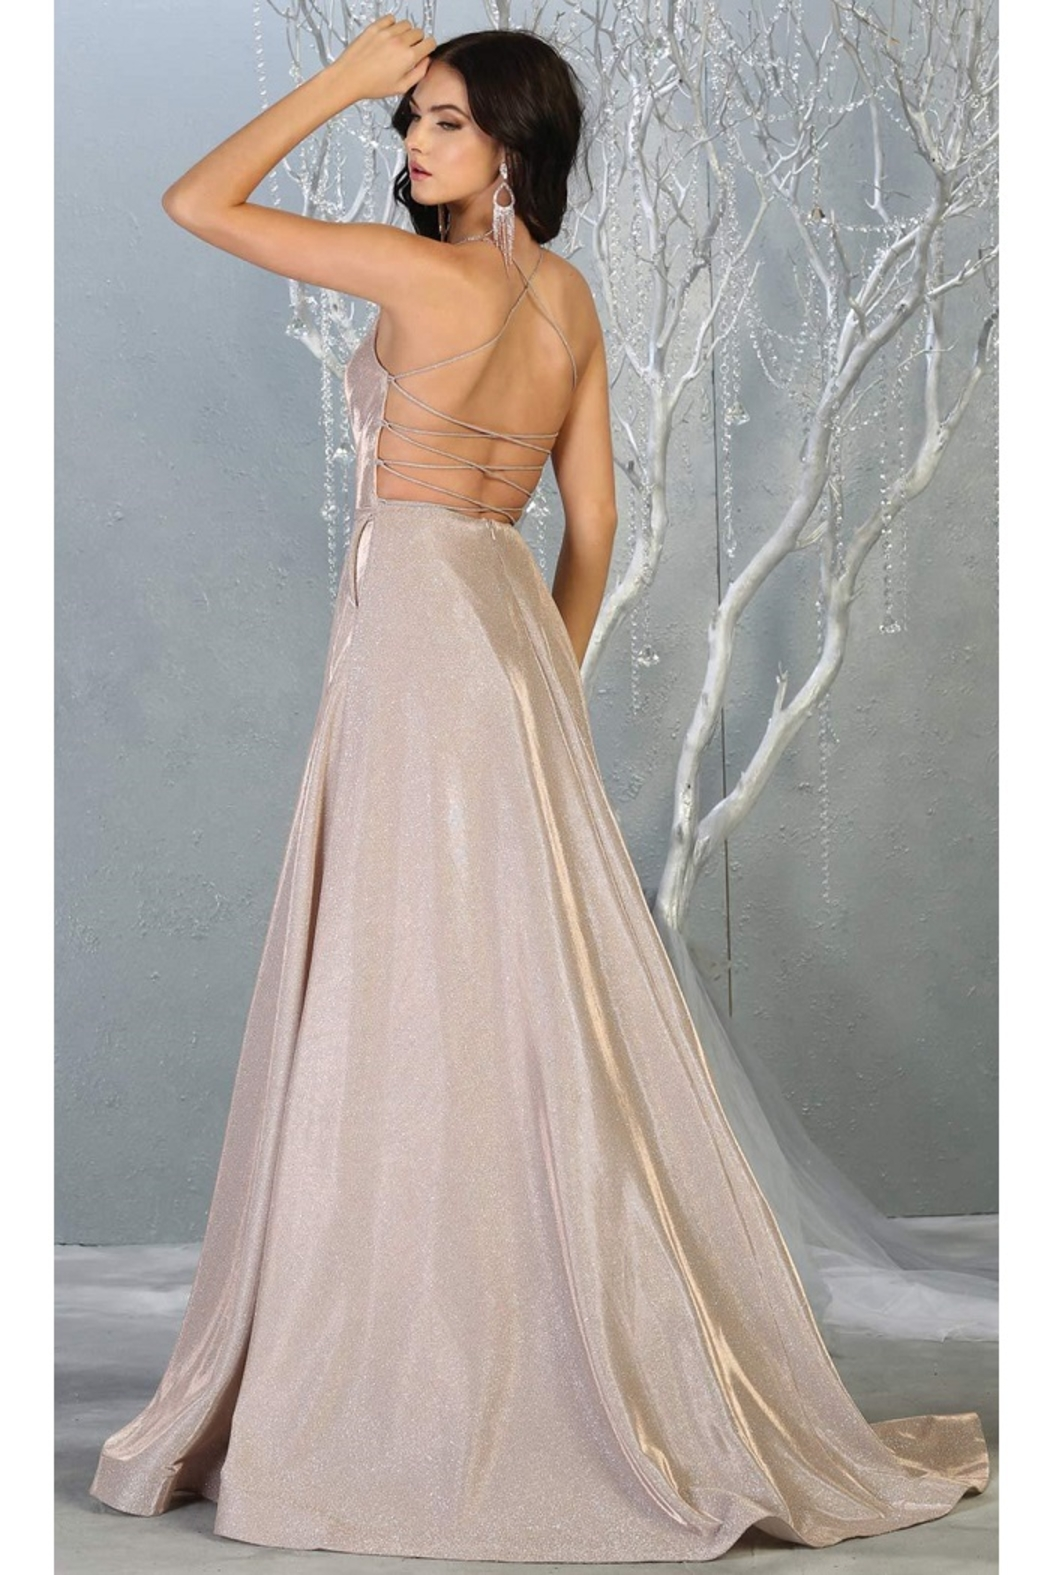 May Queen  Rose Gold Metallic A-Line Formal Long Dress - Front Full Image